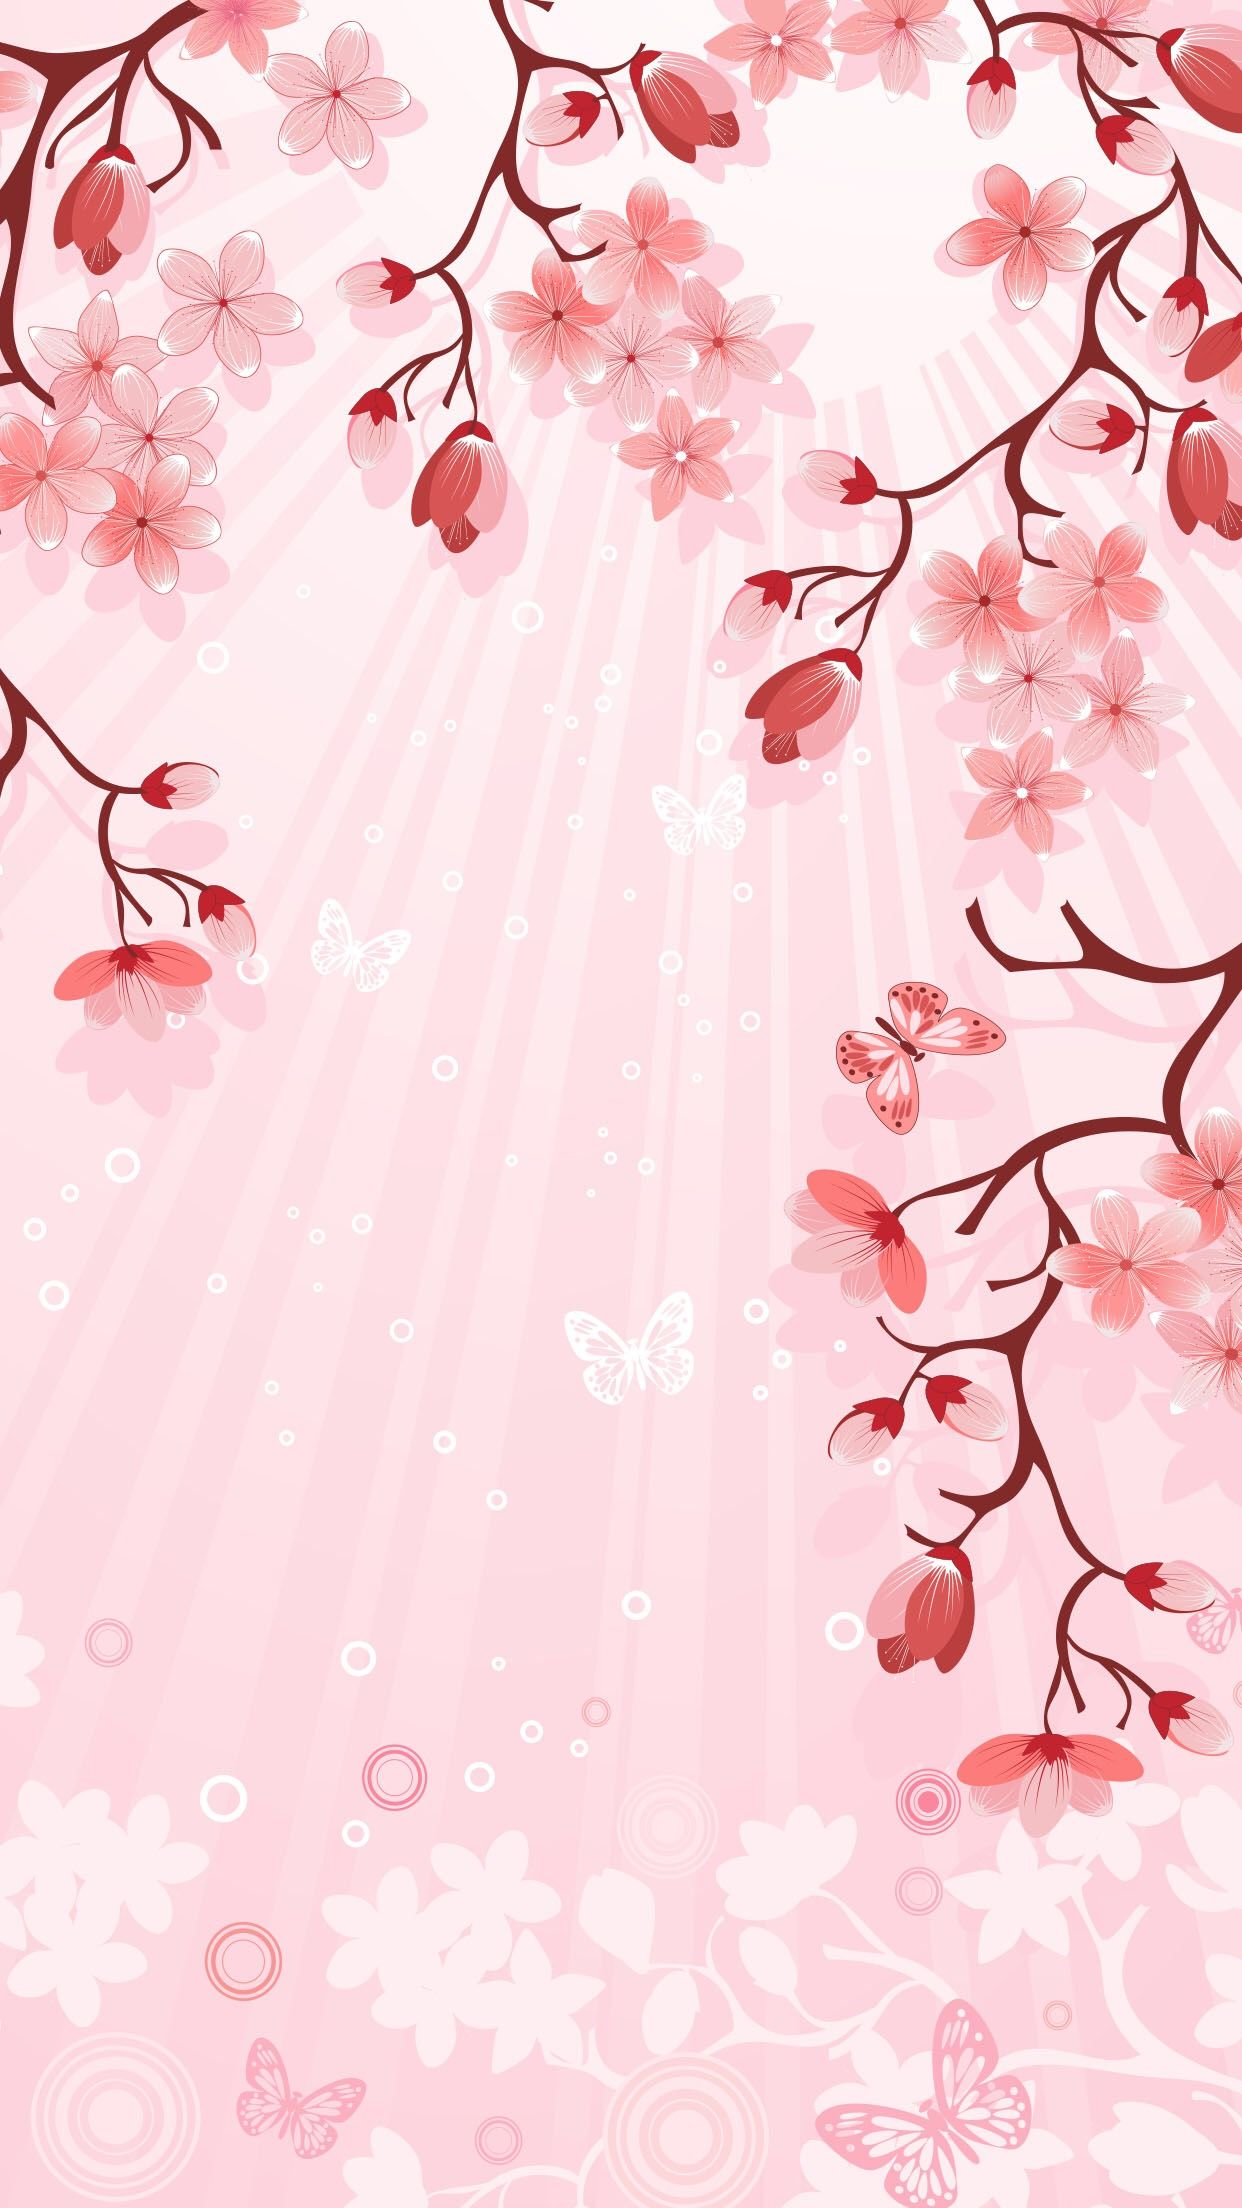 Pin By Kendy Murphy On Backgrounds Pink Flowers Wallpaper Flowery Wallpaper Flower Wallpaper